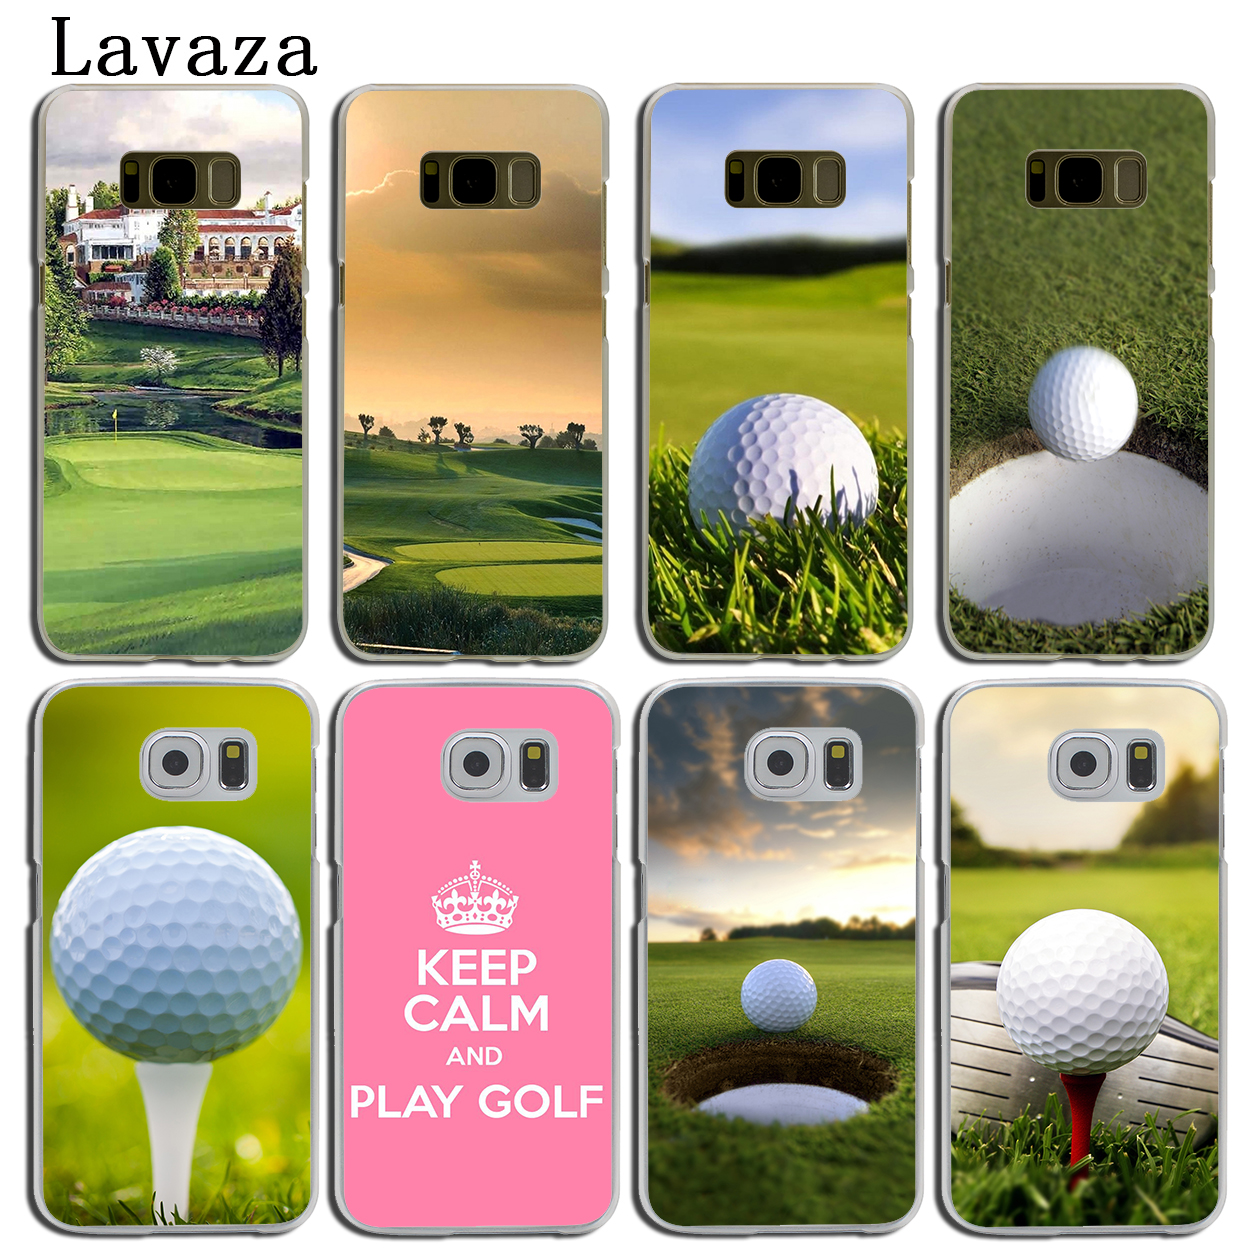 Lavaza Golf Sports Hard Phone Shell Case for Samsung Galaxy S8 S9 Plus S3 S4 S5 & Mini S6 S7 Edge Plus Cover